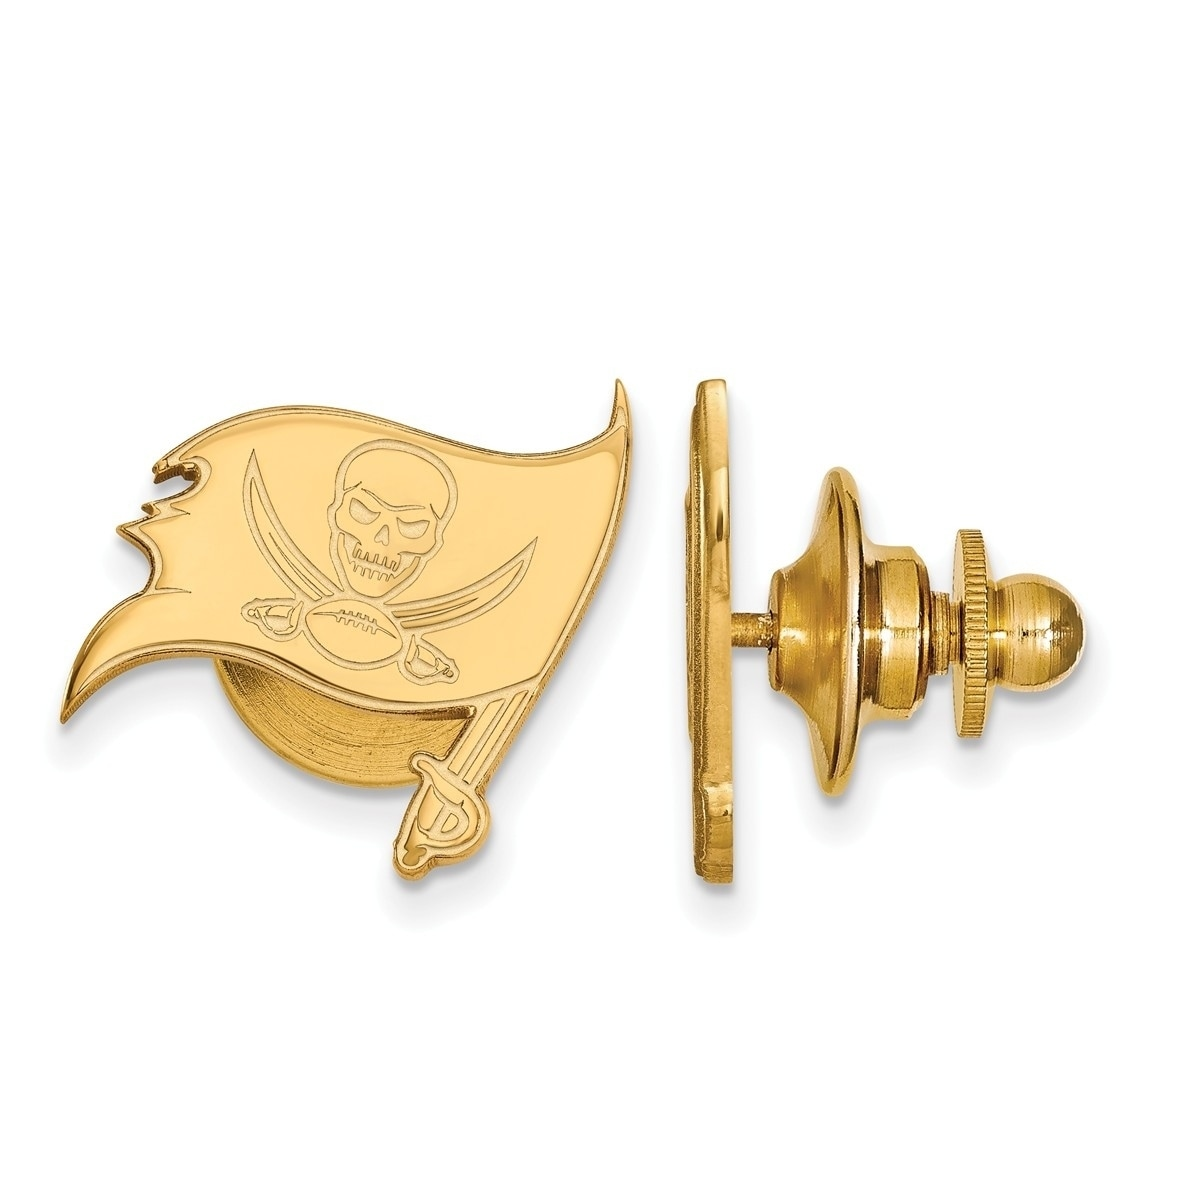 976a3b442 Shop Versil Gold Plated Sterling Silver Tampa Bay Buccaneers Lapel Pin -  Free Shipping Today - Overstock.com - 20608542